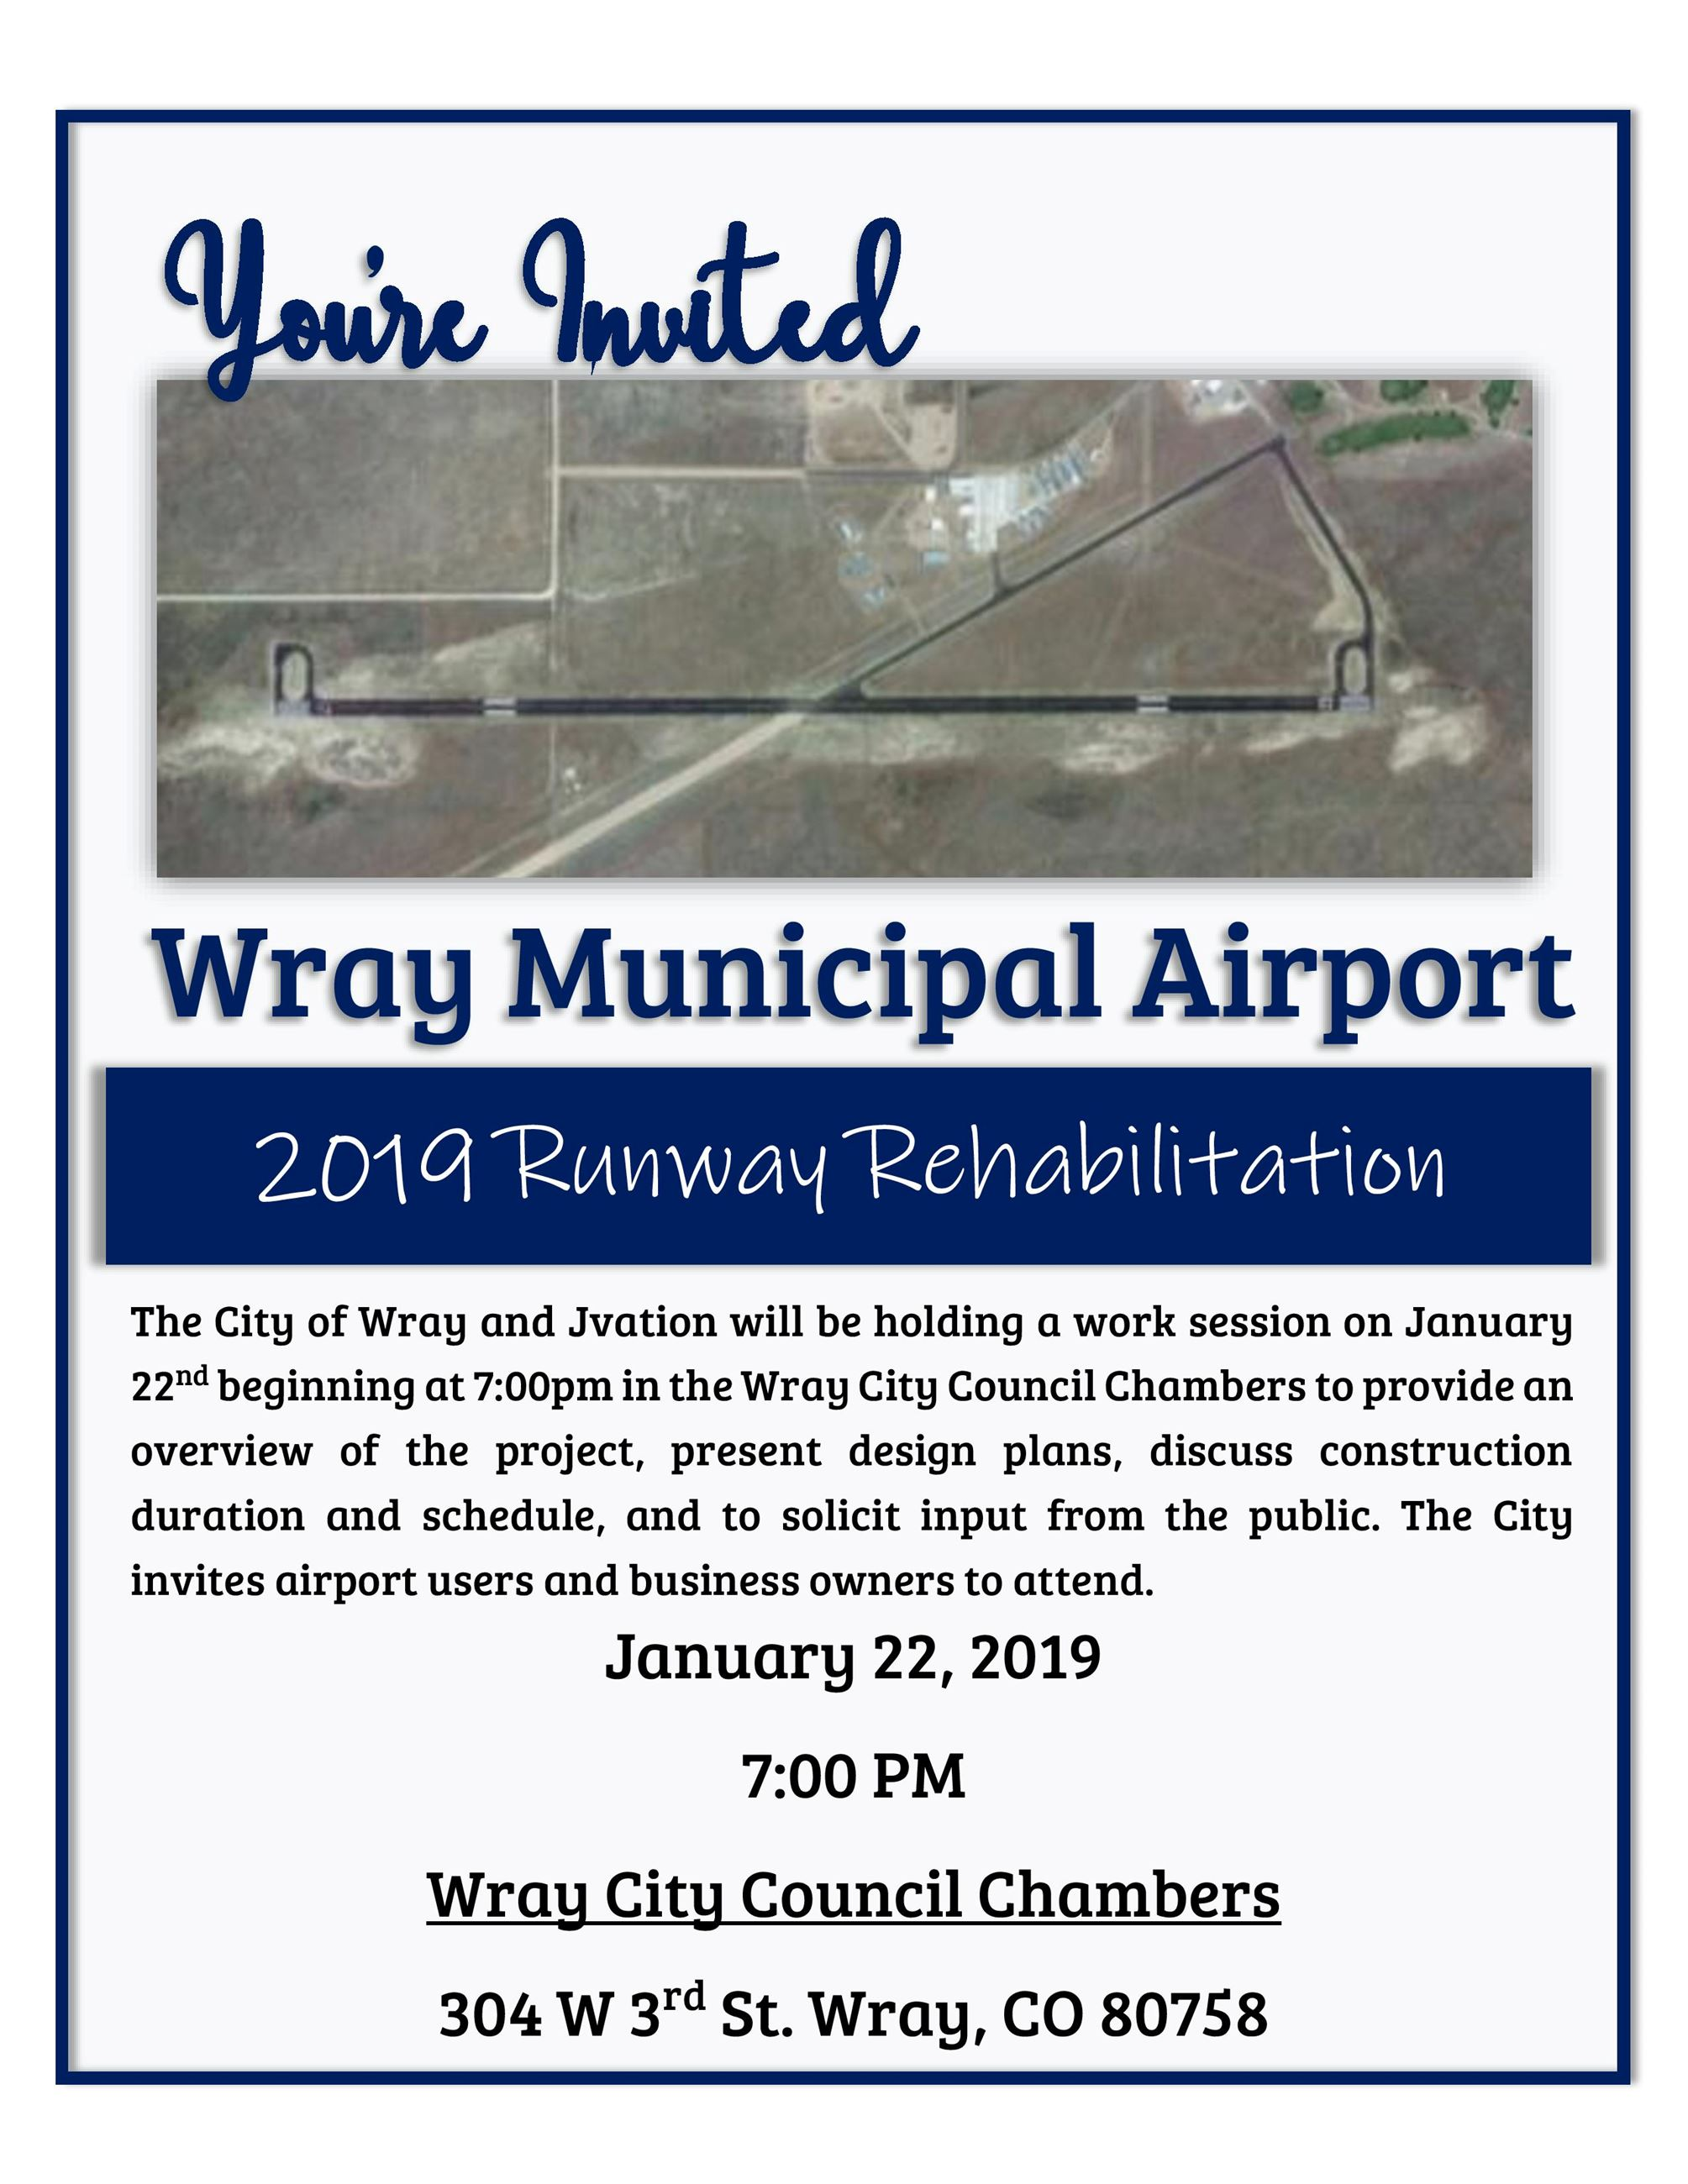 2019 Runway Rehabilitation Meeting Invite